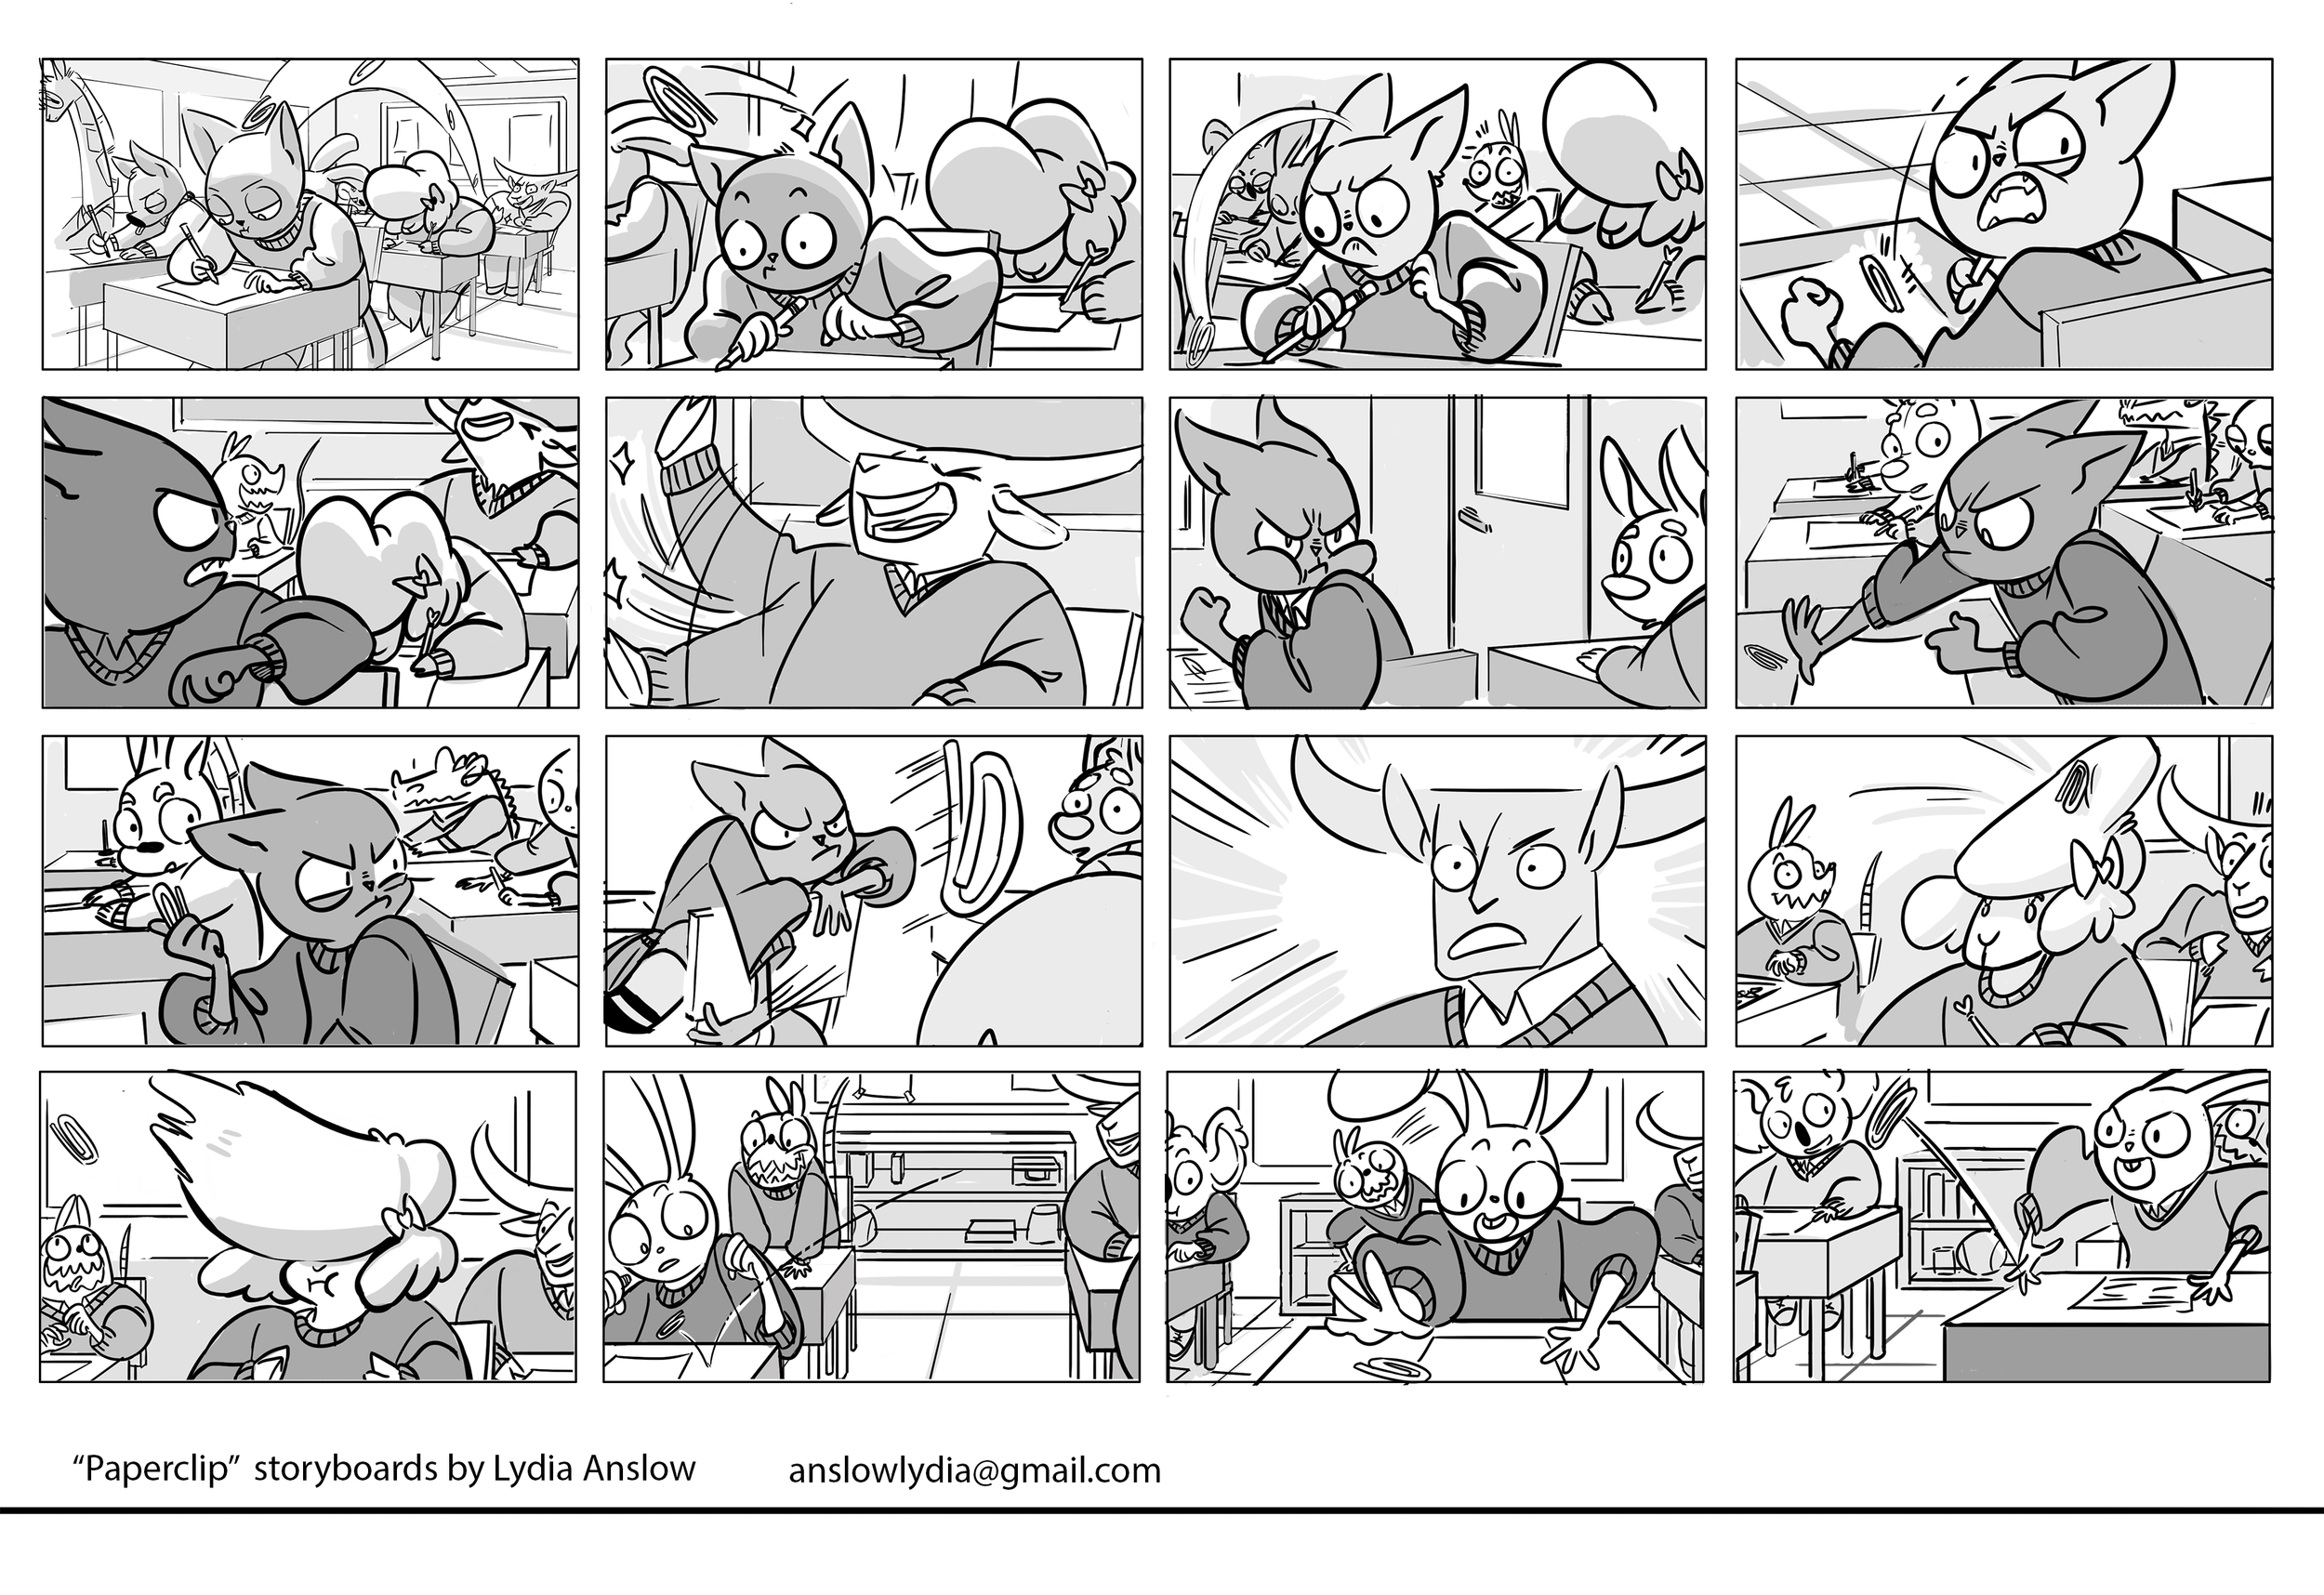 Paperclip_Storyboards_revised_1a.png